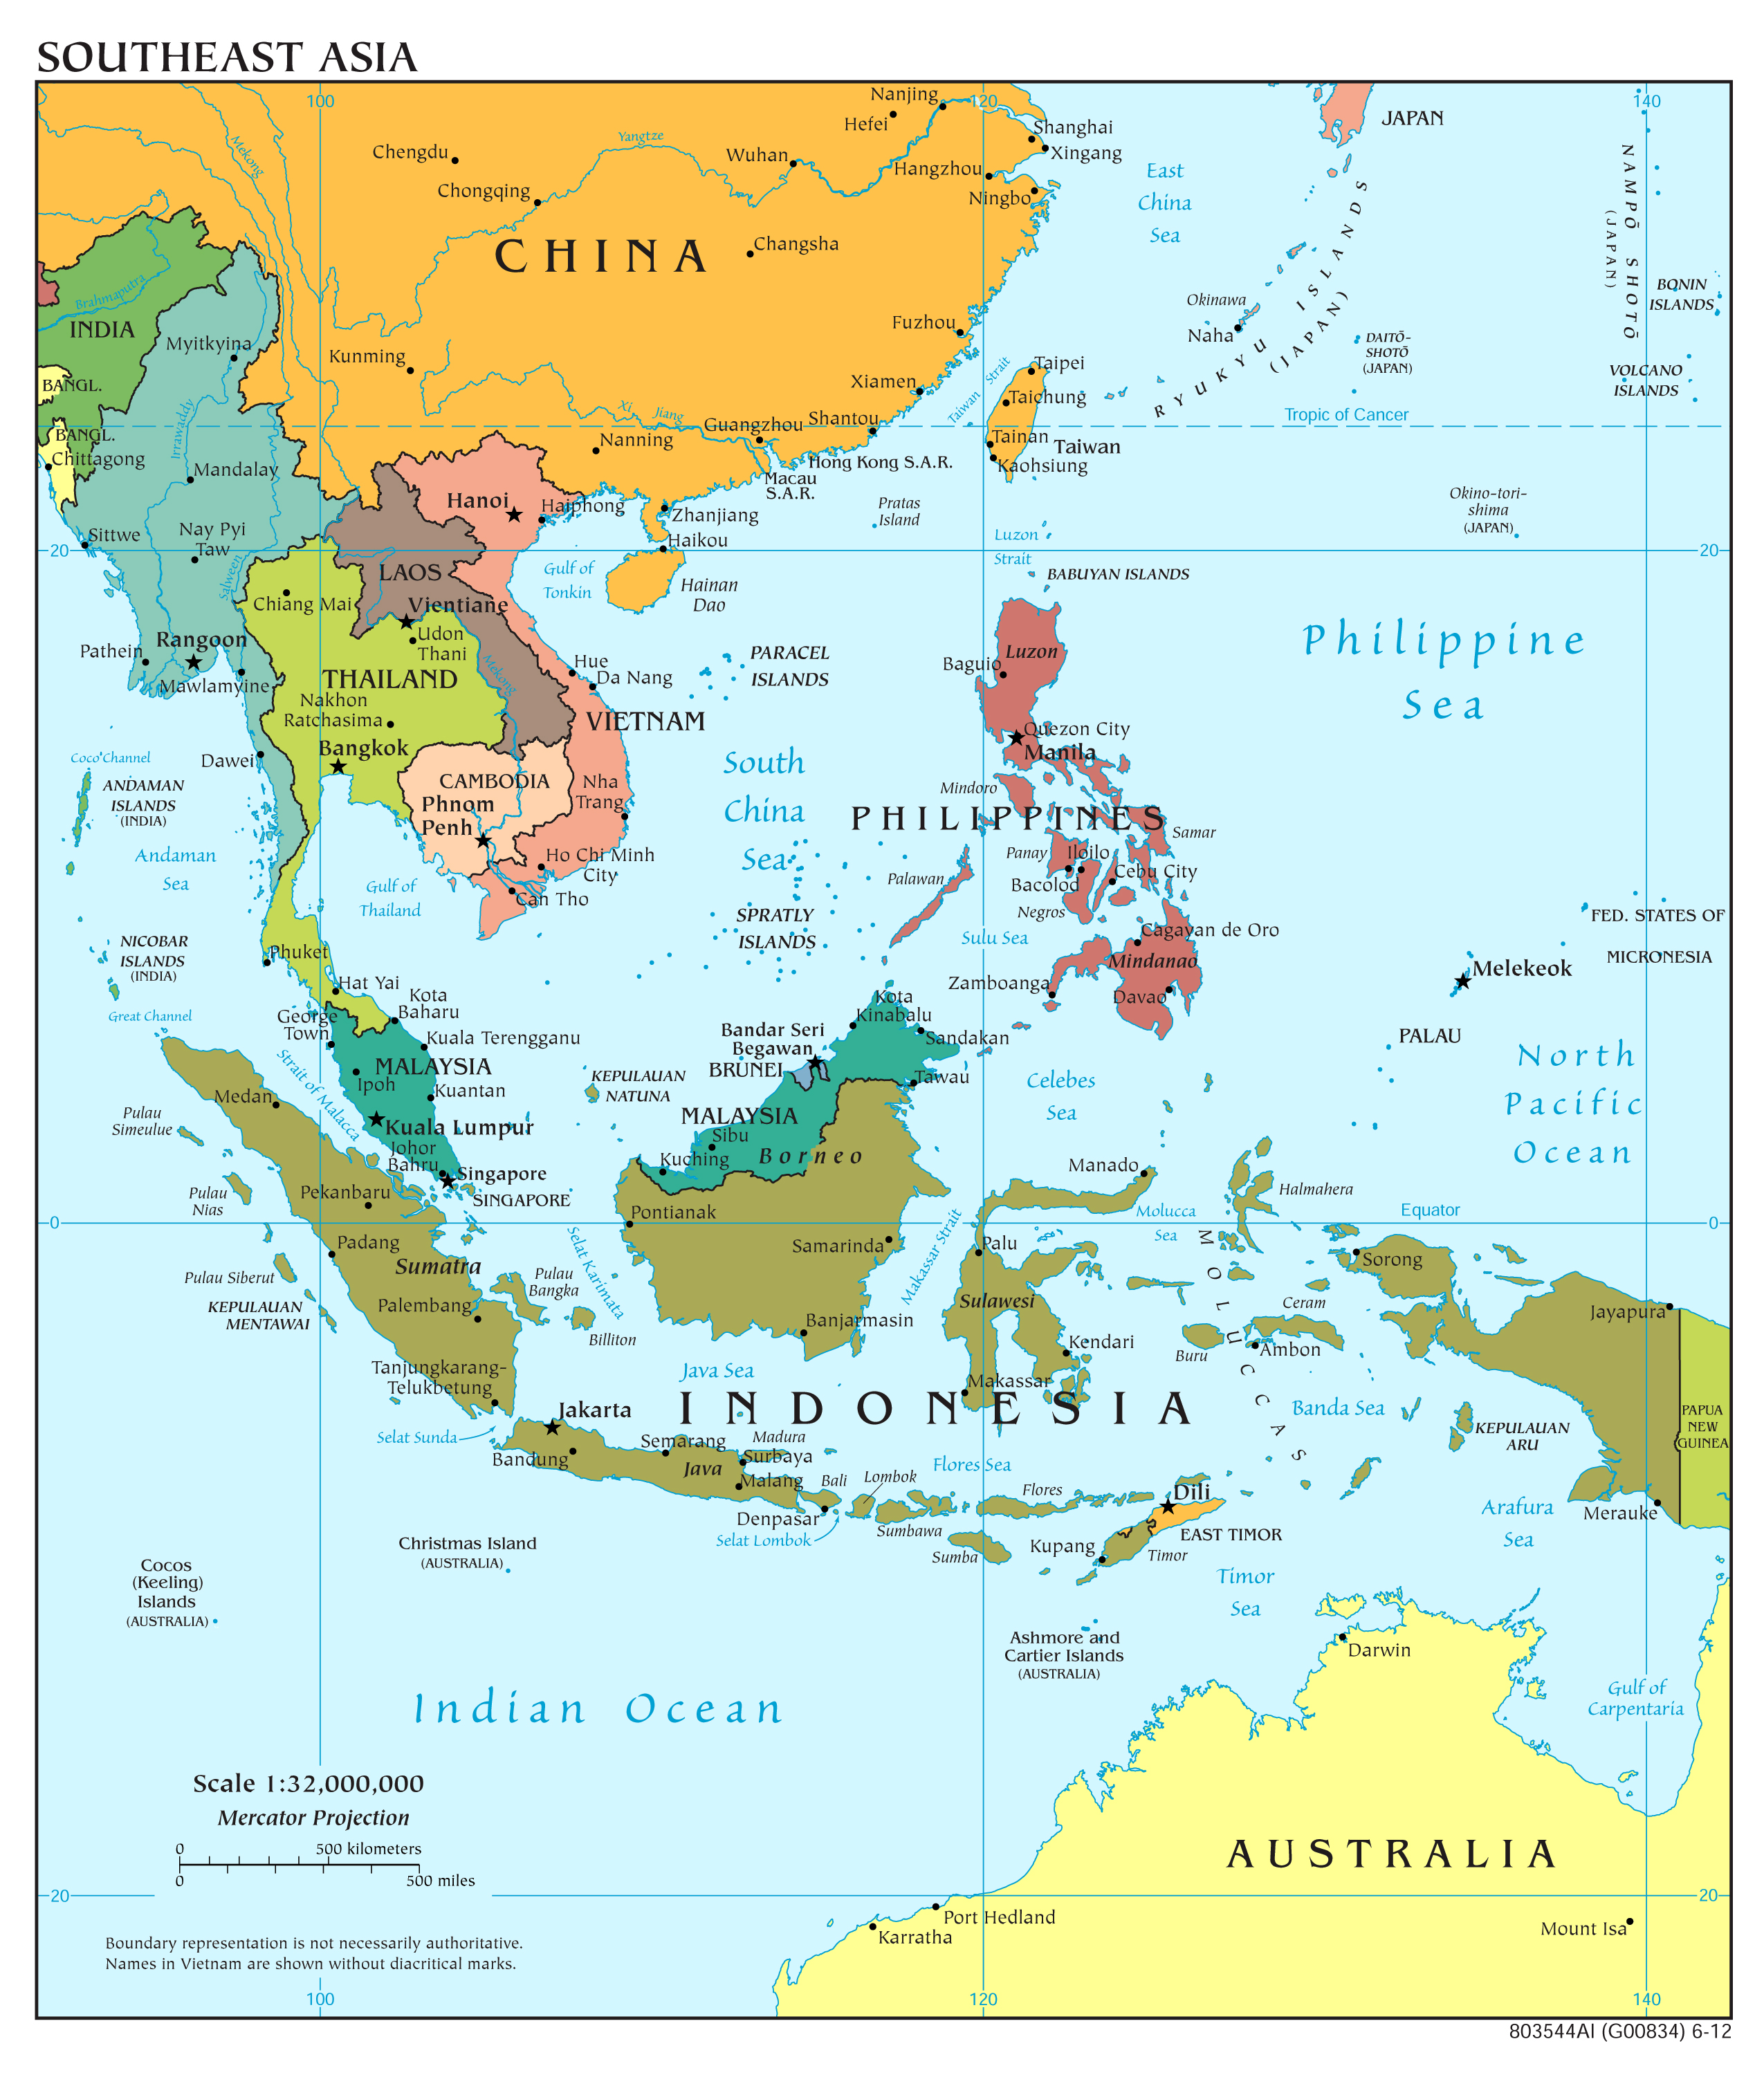 Large Map Of Asia.Large Scale Political Map Of Southeast Asia 2012 Vidiani Com